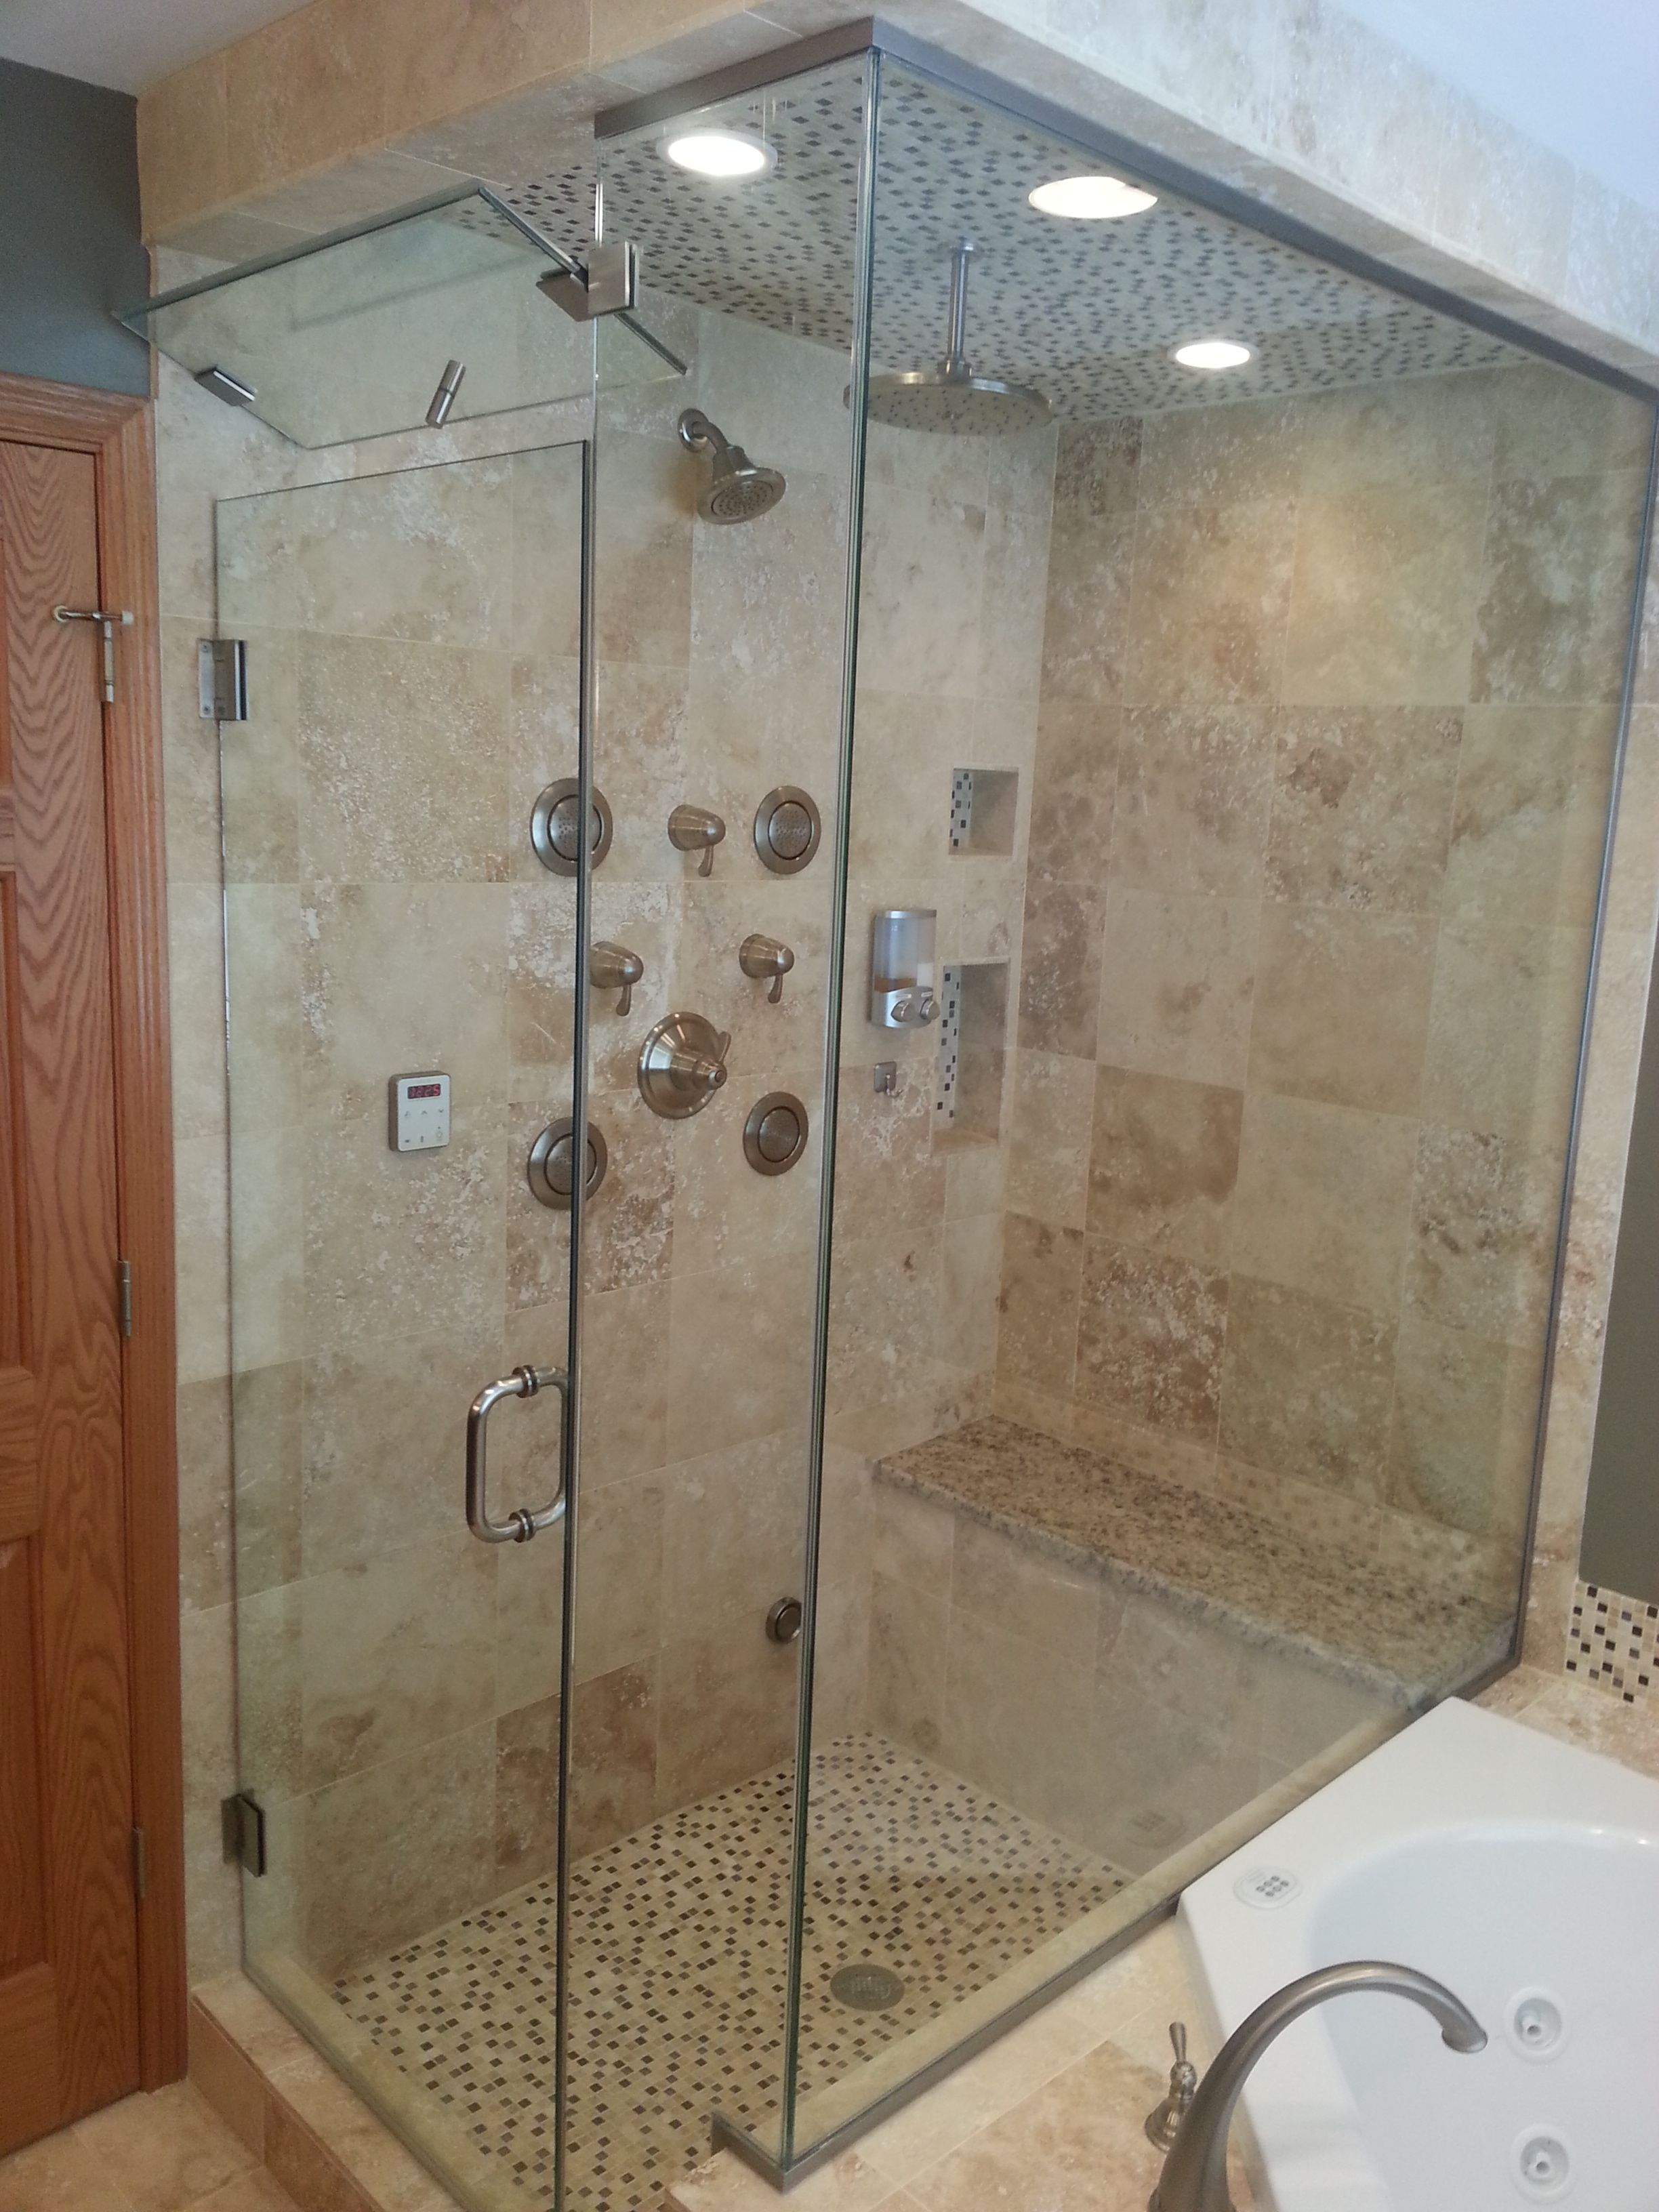 modern design nook attractive how cool waterproofing with to install rain and for bathroom showers a shower pan head tiled